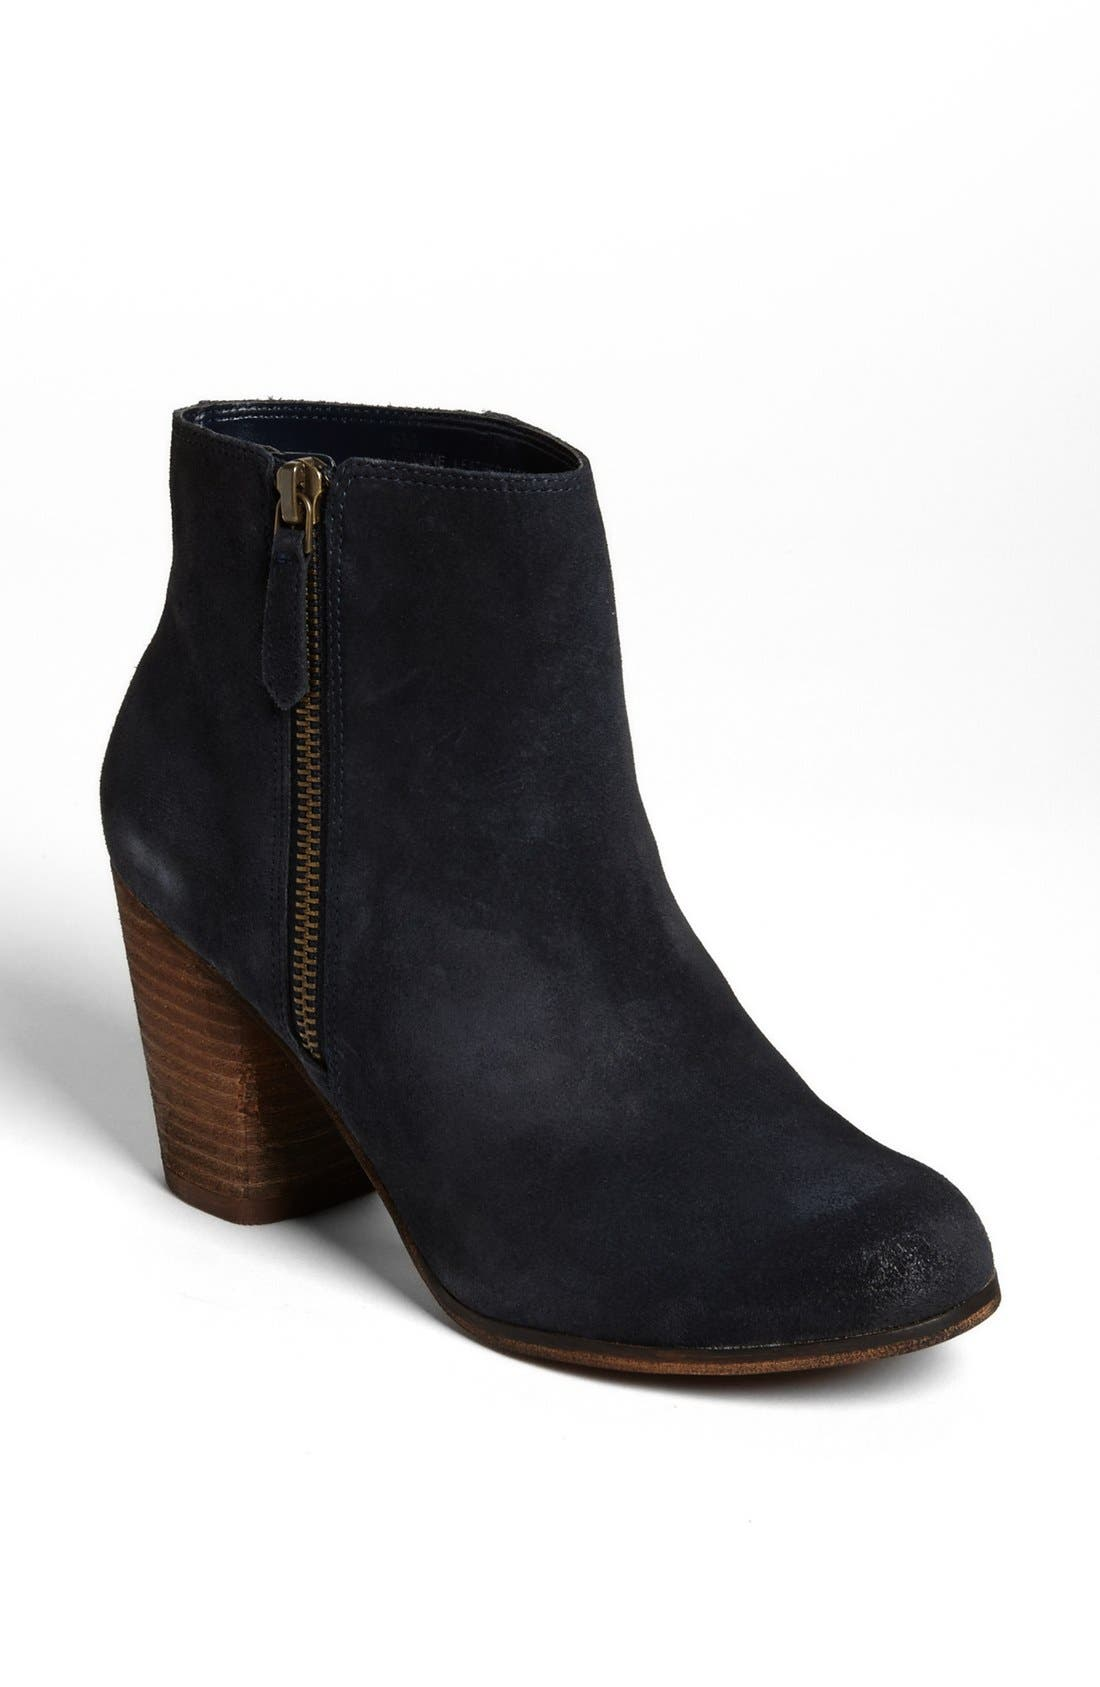 Main Image - BP. 'Trolley' Suede Ankle Boot (Women)